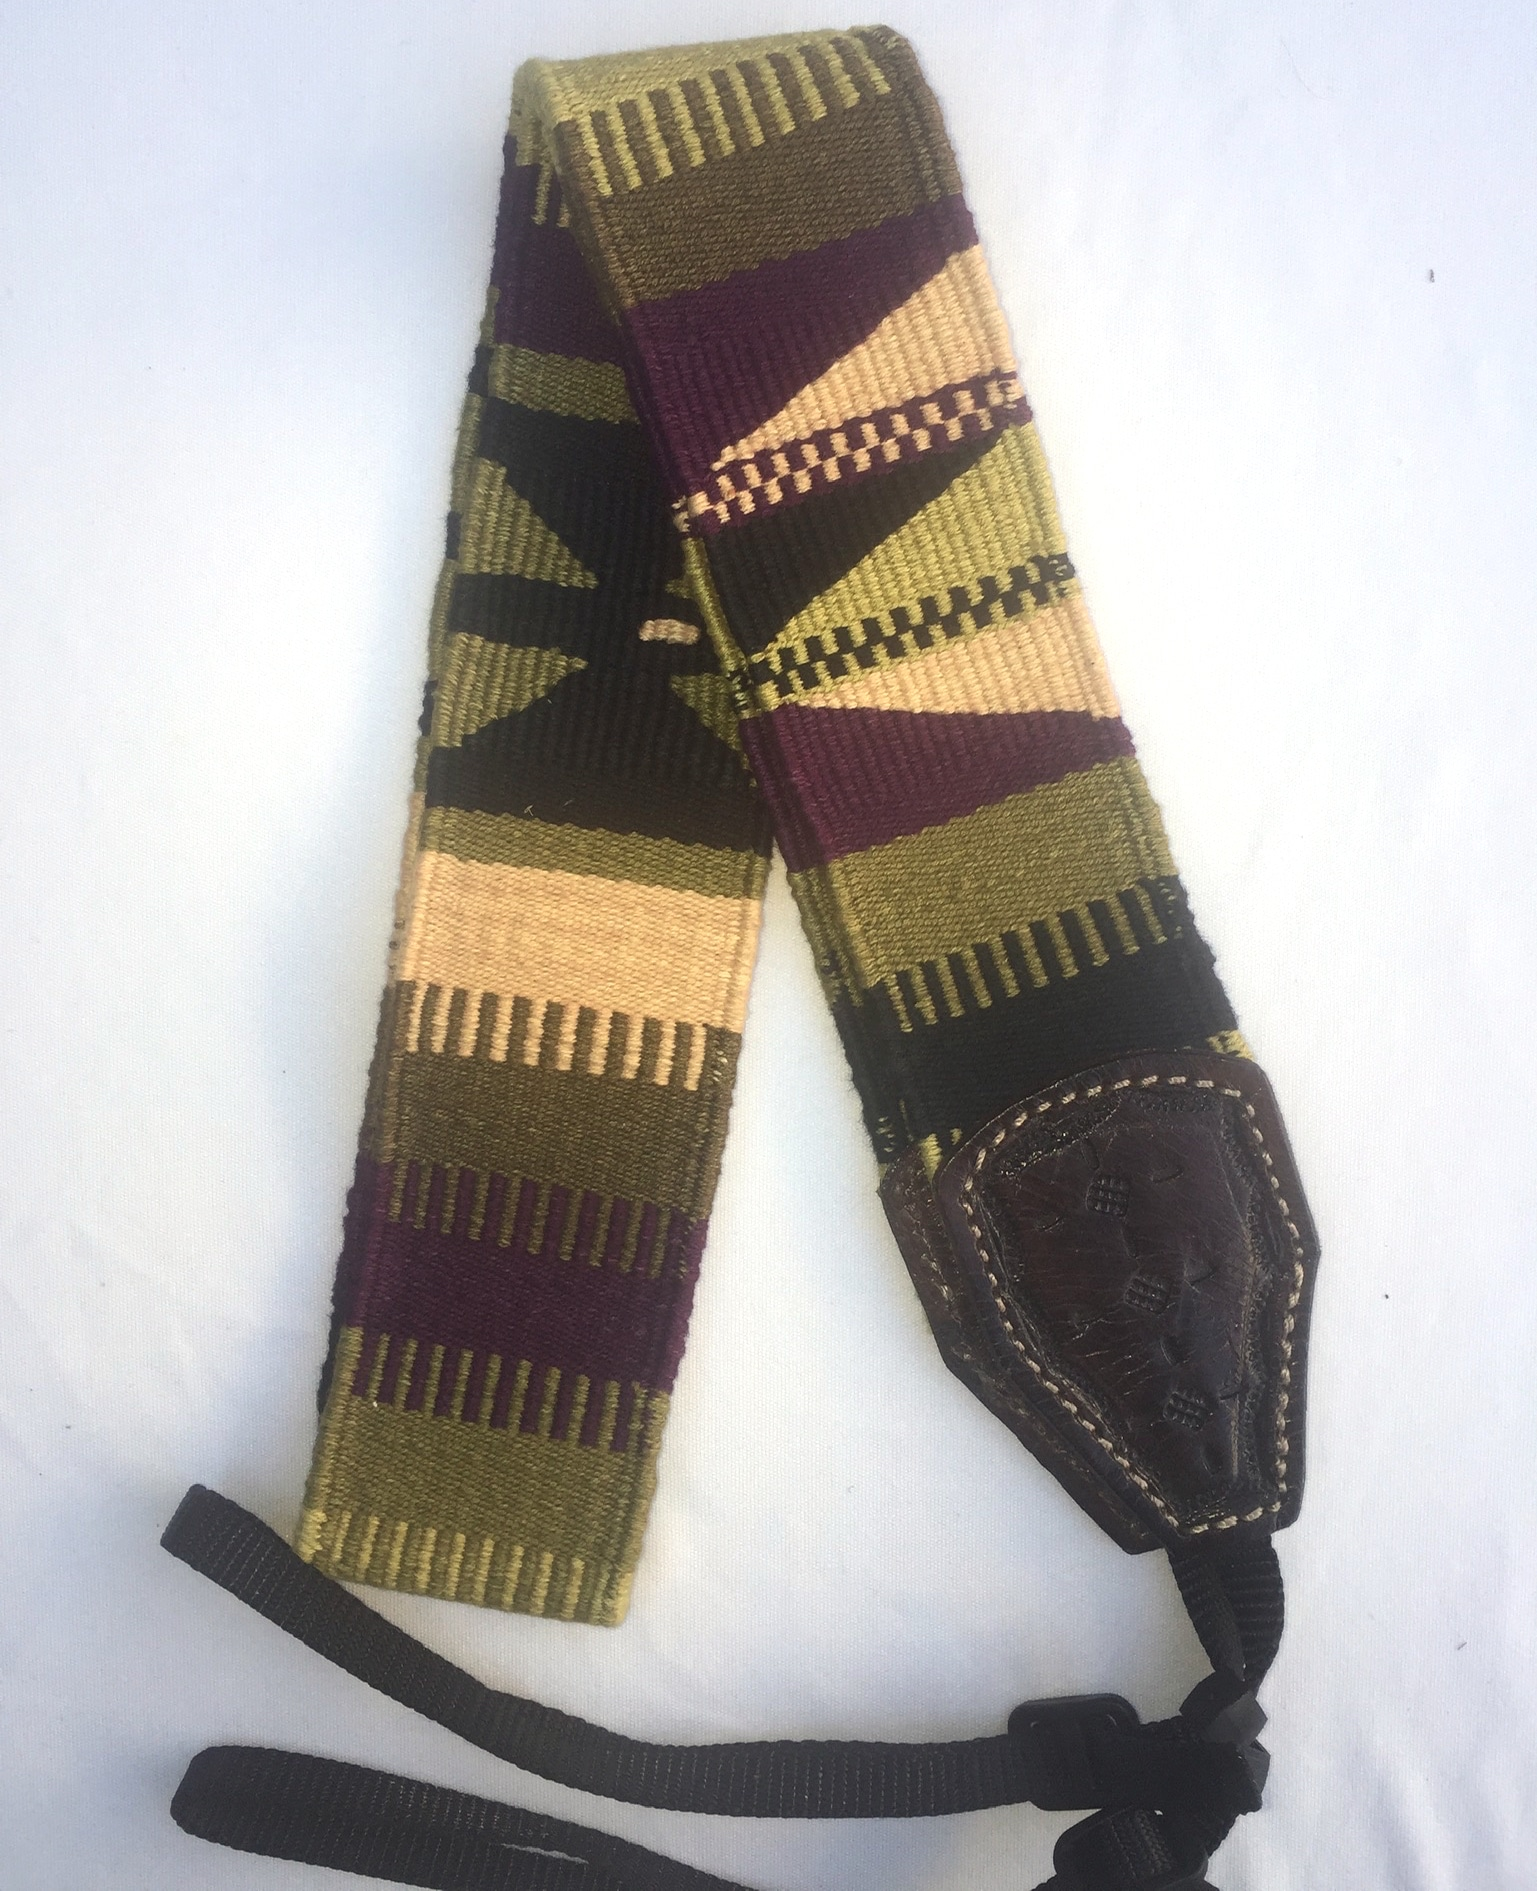 Handwoven Cotton and Leather Camera Strap - Green, Purple, Black and Gold with Butterflies and Geometric Patterns